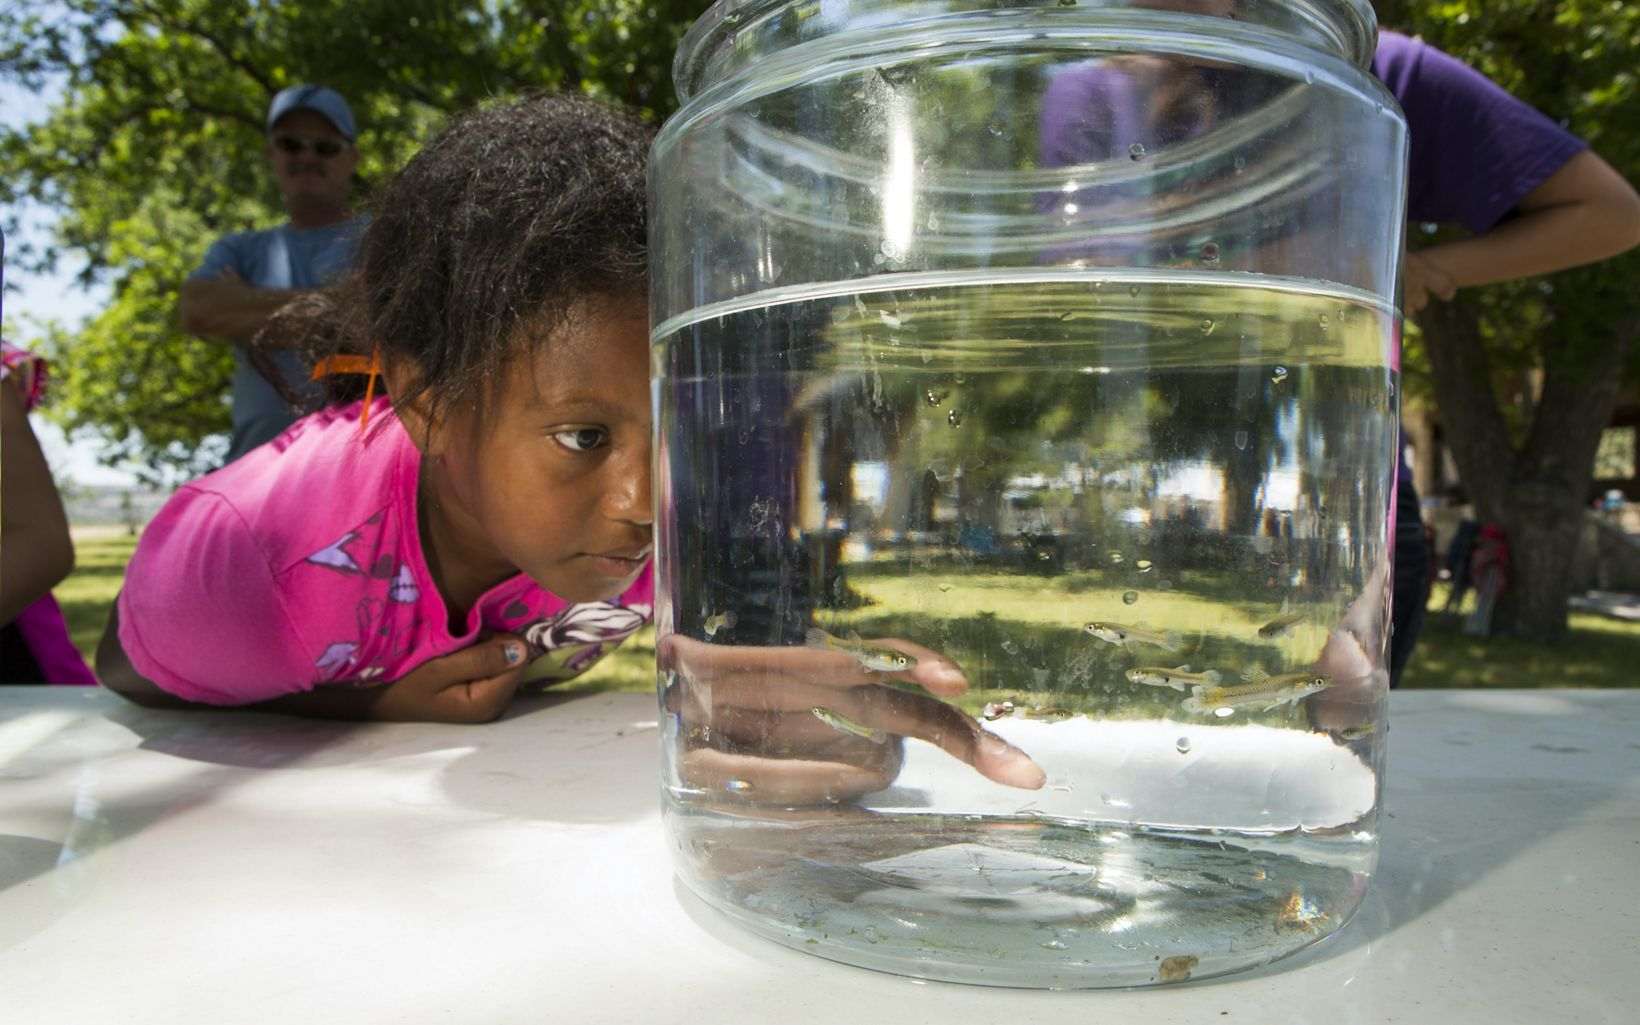 A girl leans in close to look at tiny fish in a jar of water.